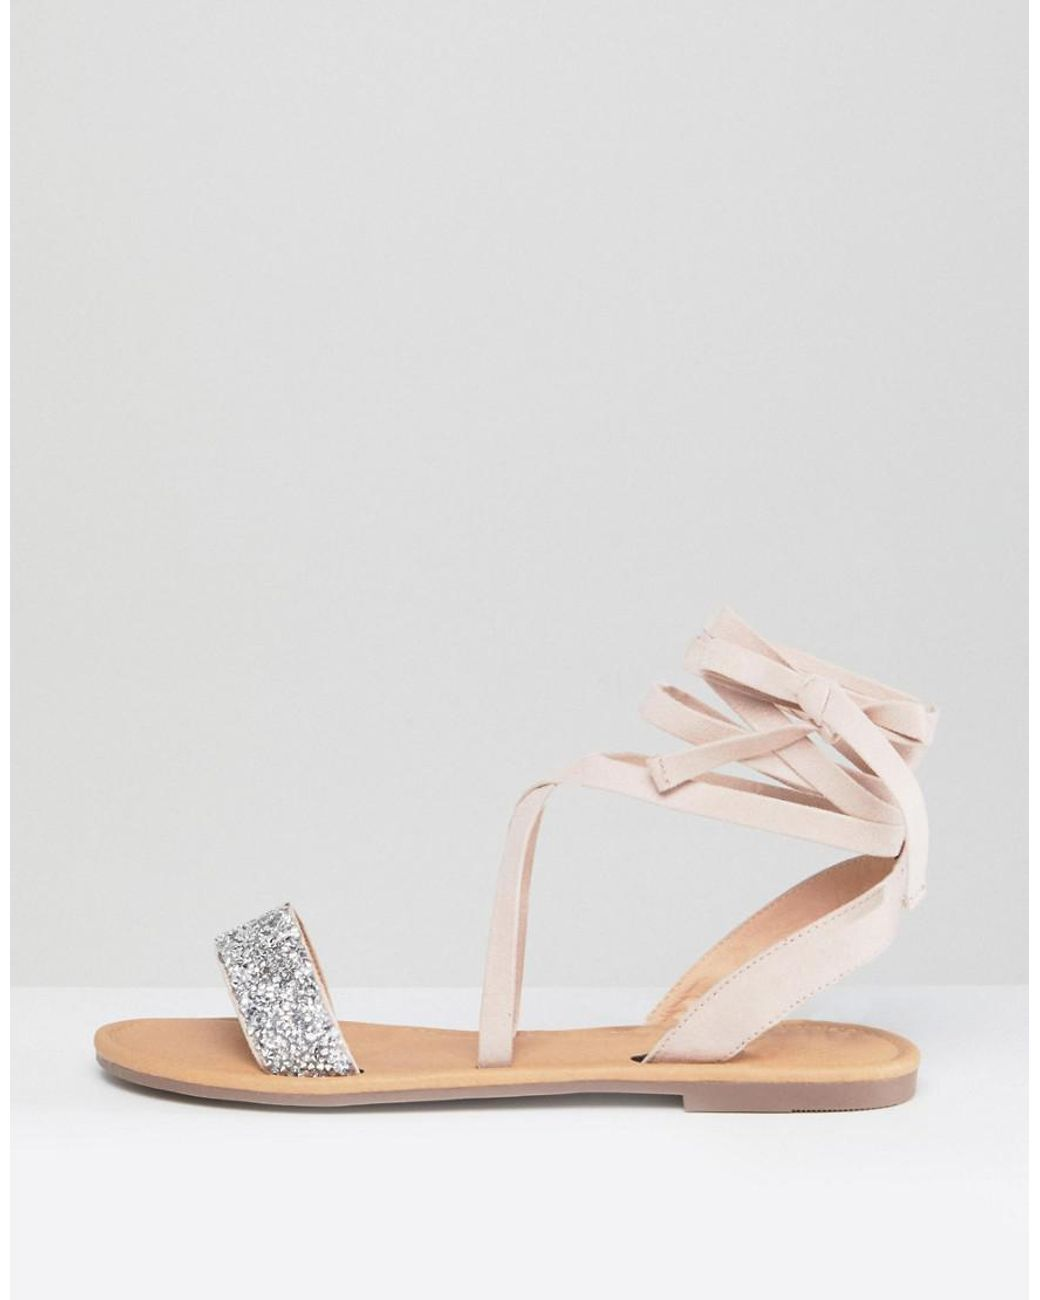 b6548a38d ASOS Asos Fi Embellished Flat Sandals in Natural - Lyst